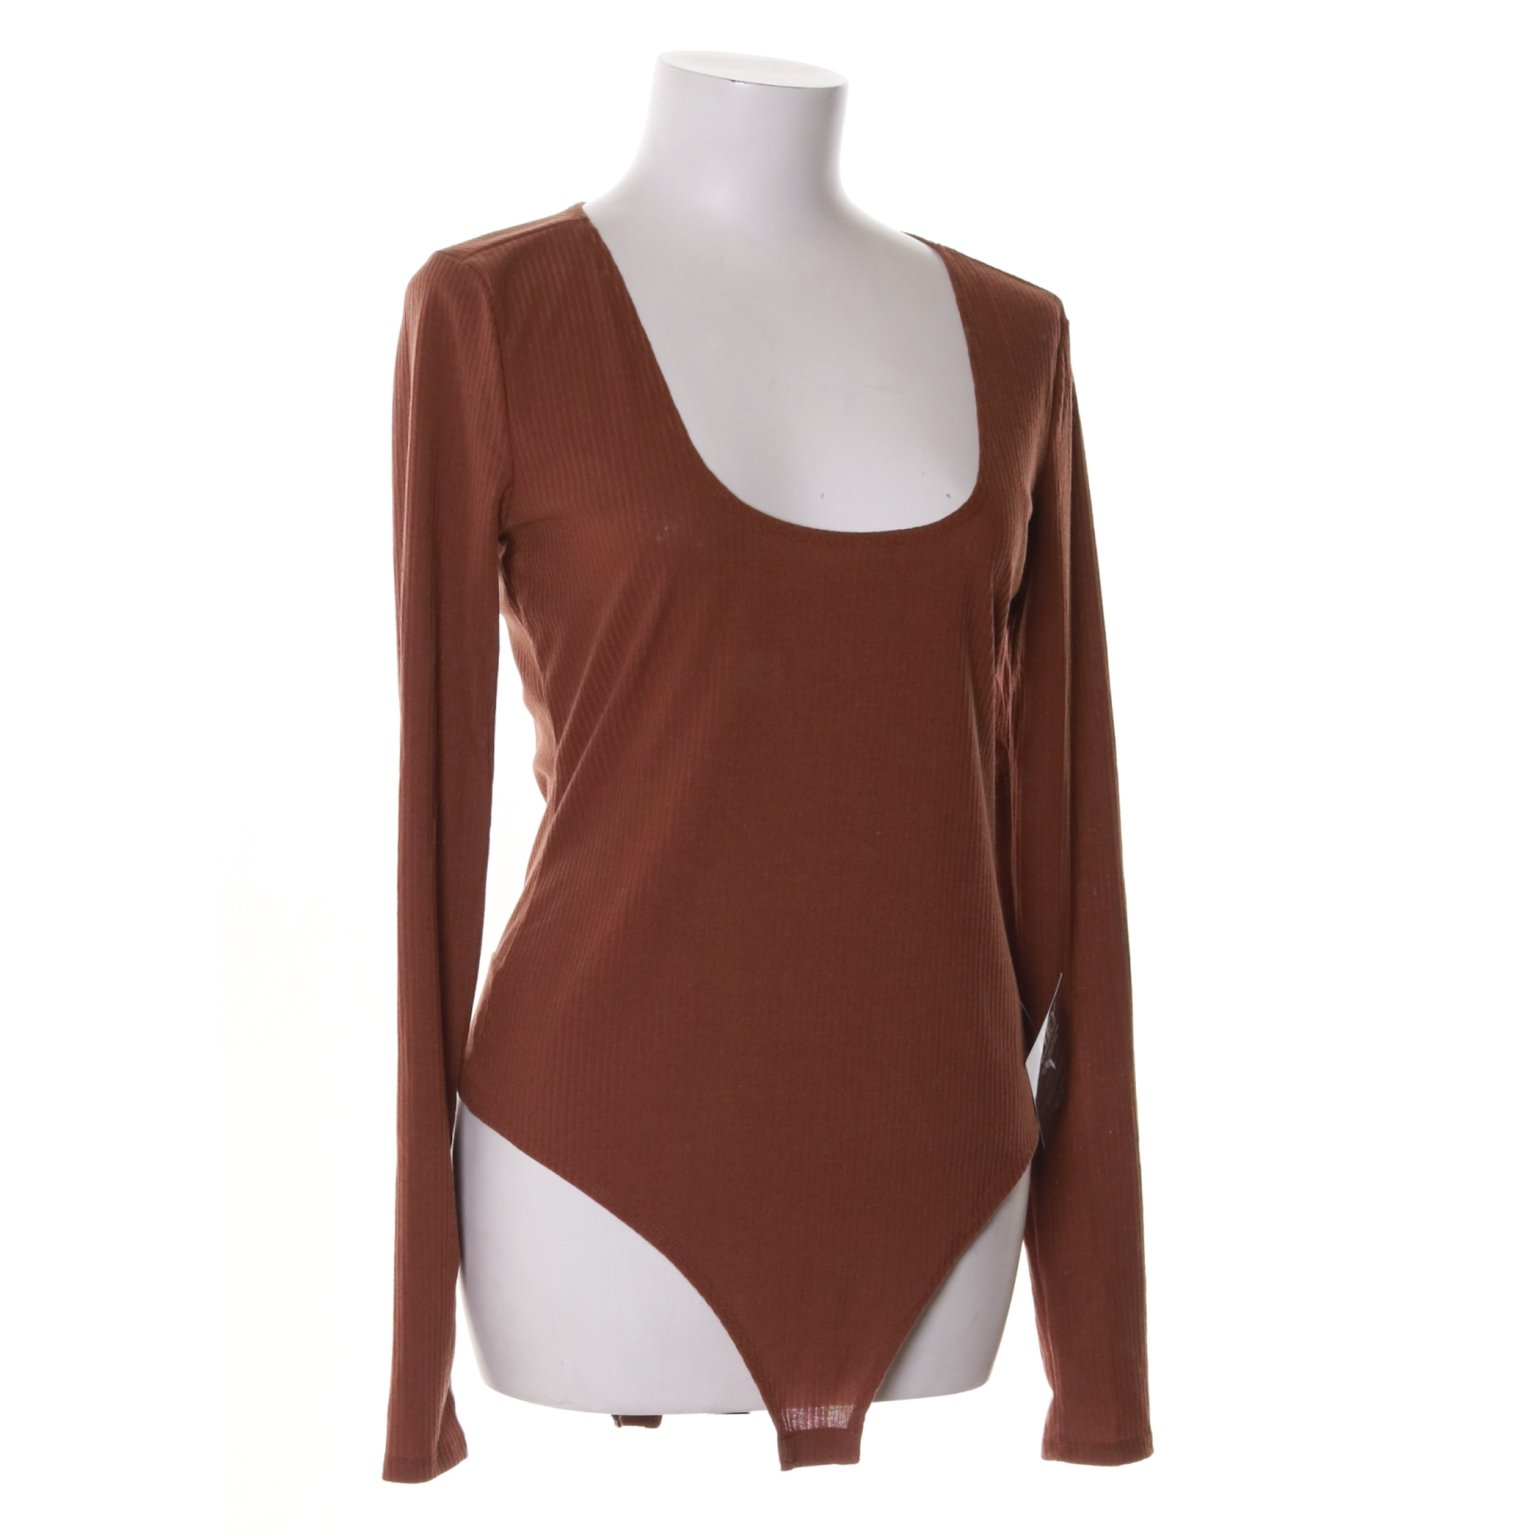 NLY One, Body, Strl: L, Rib Scoop Body, Brun, Polyester/Elastan